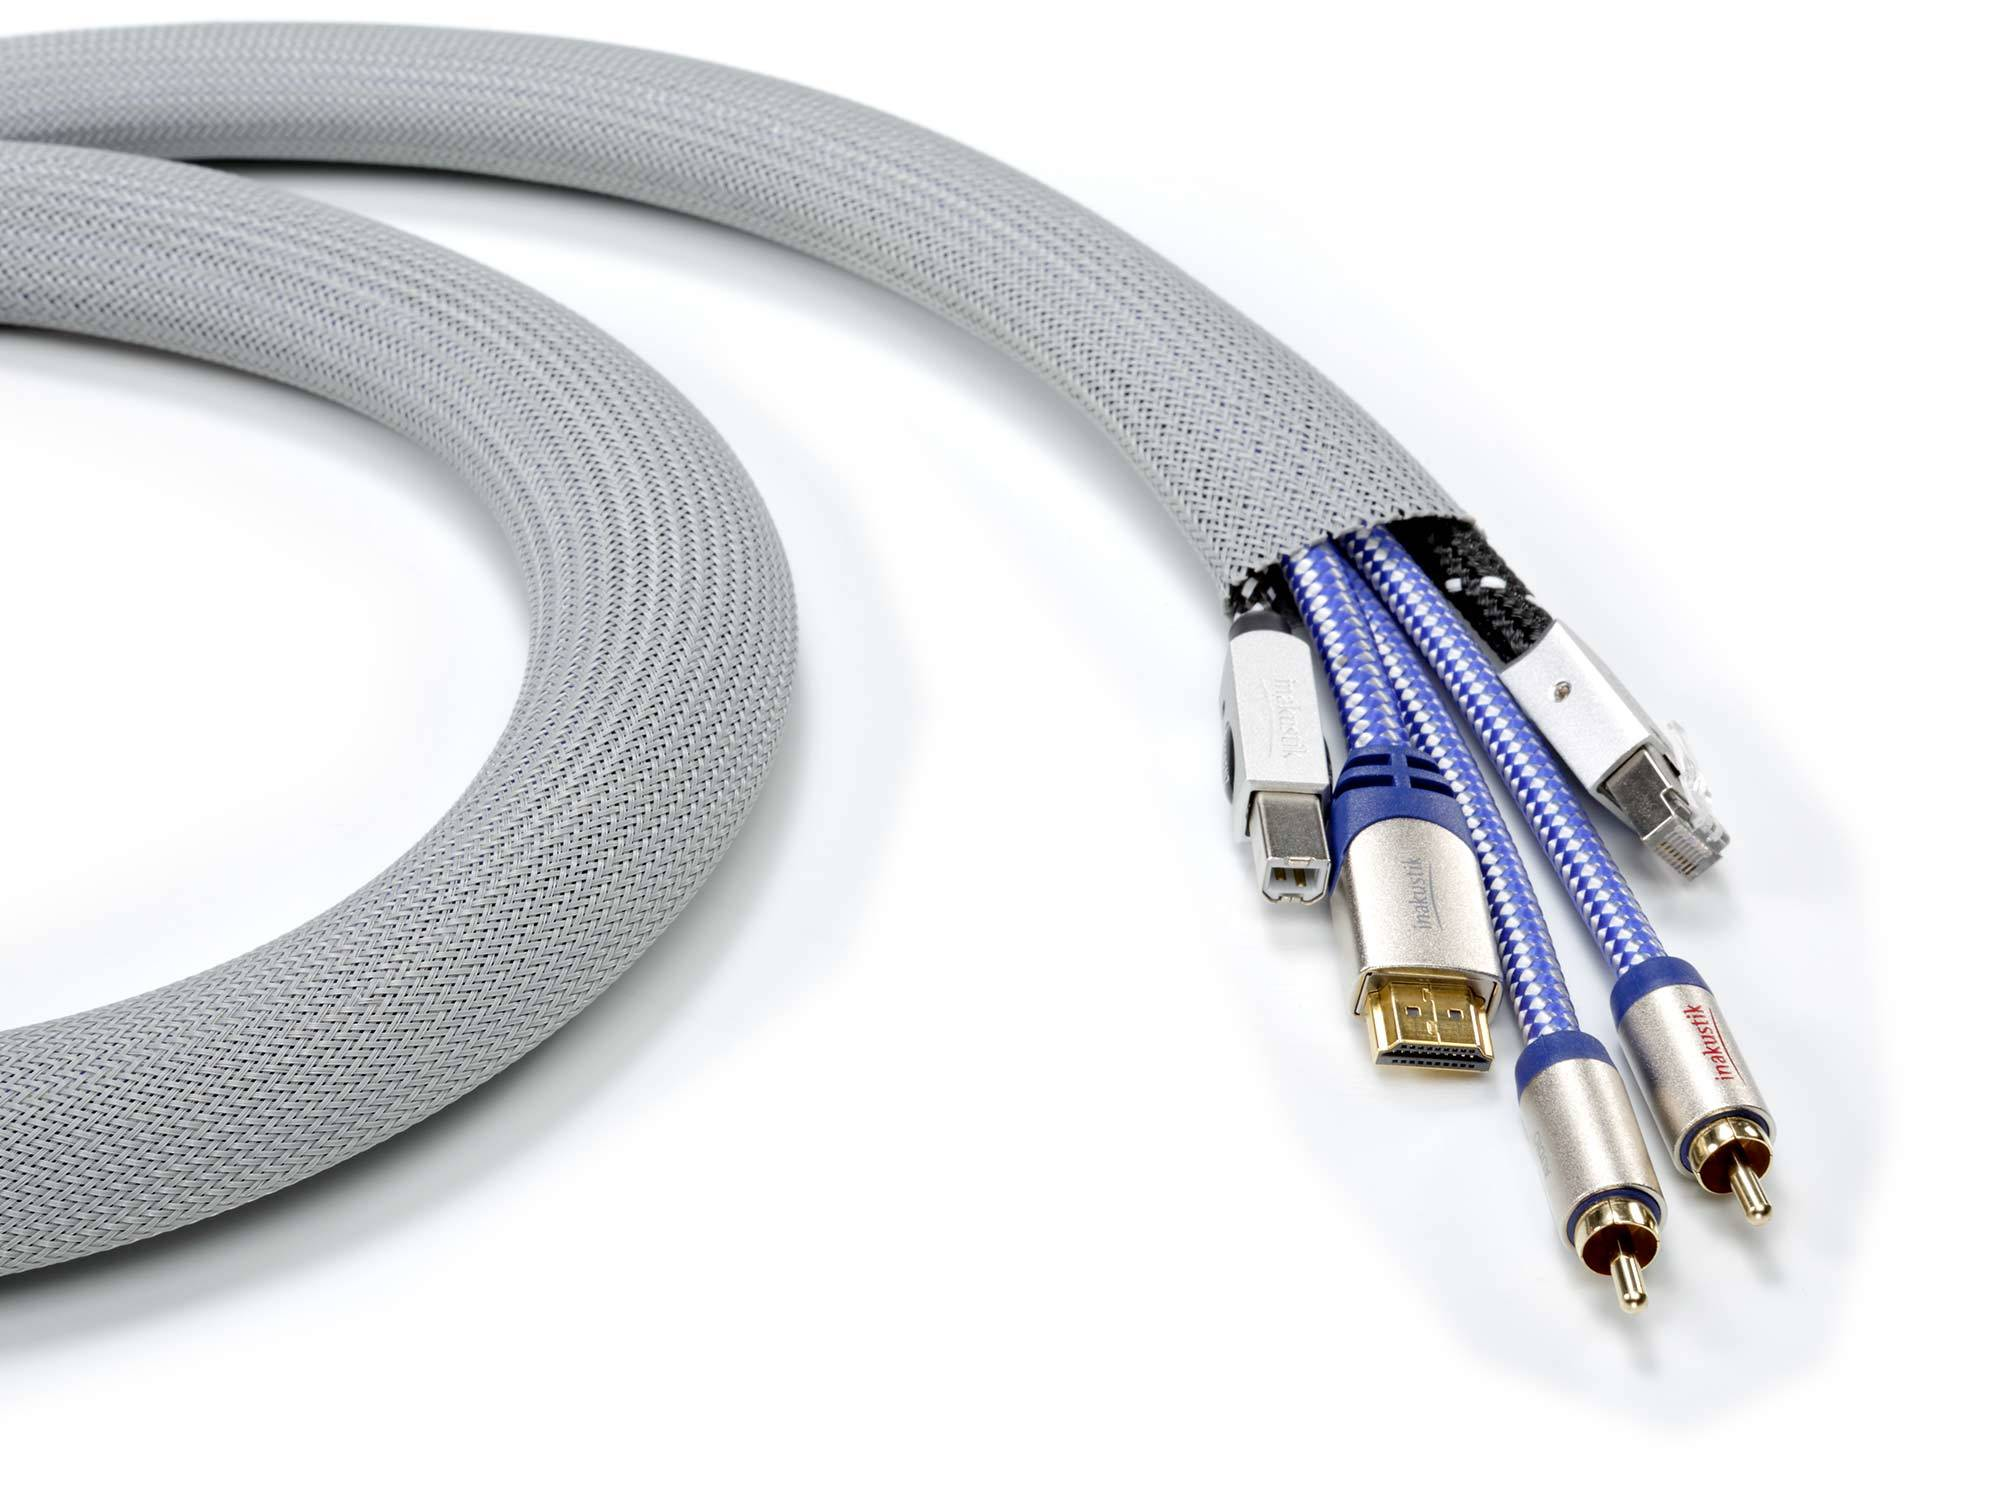 Inakustik Premium Cable Conduit 25-38mm, 38 m, 009210032